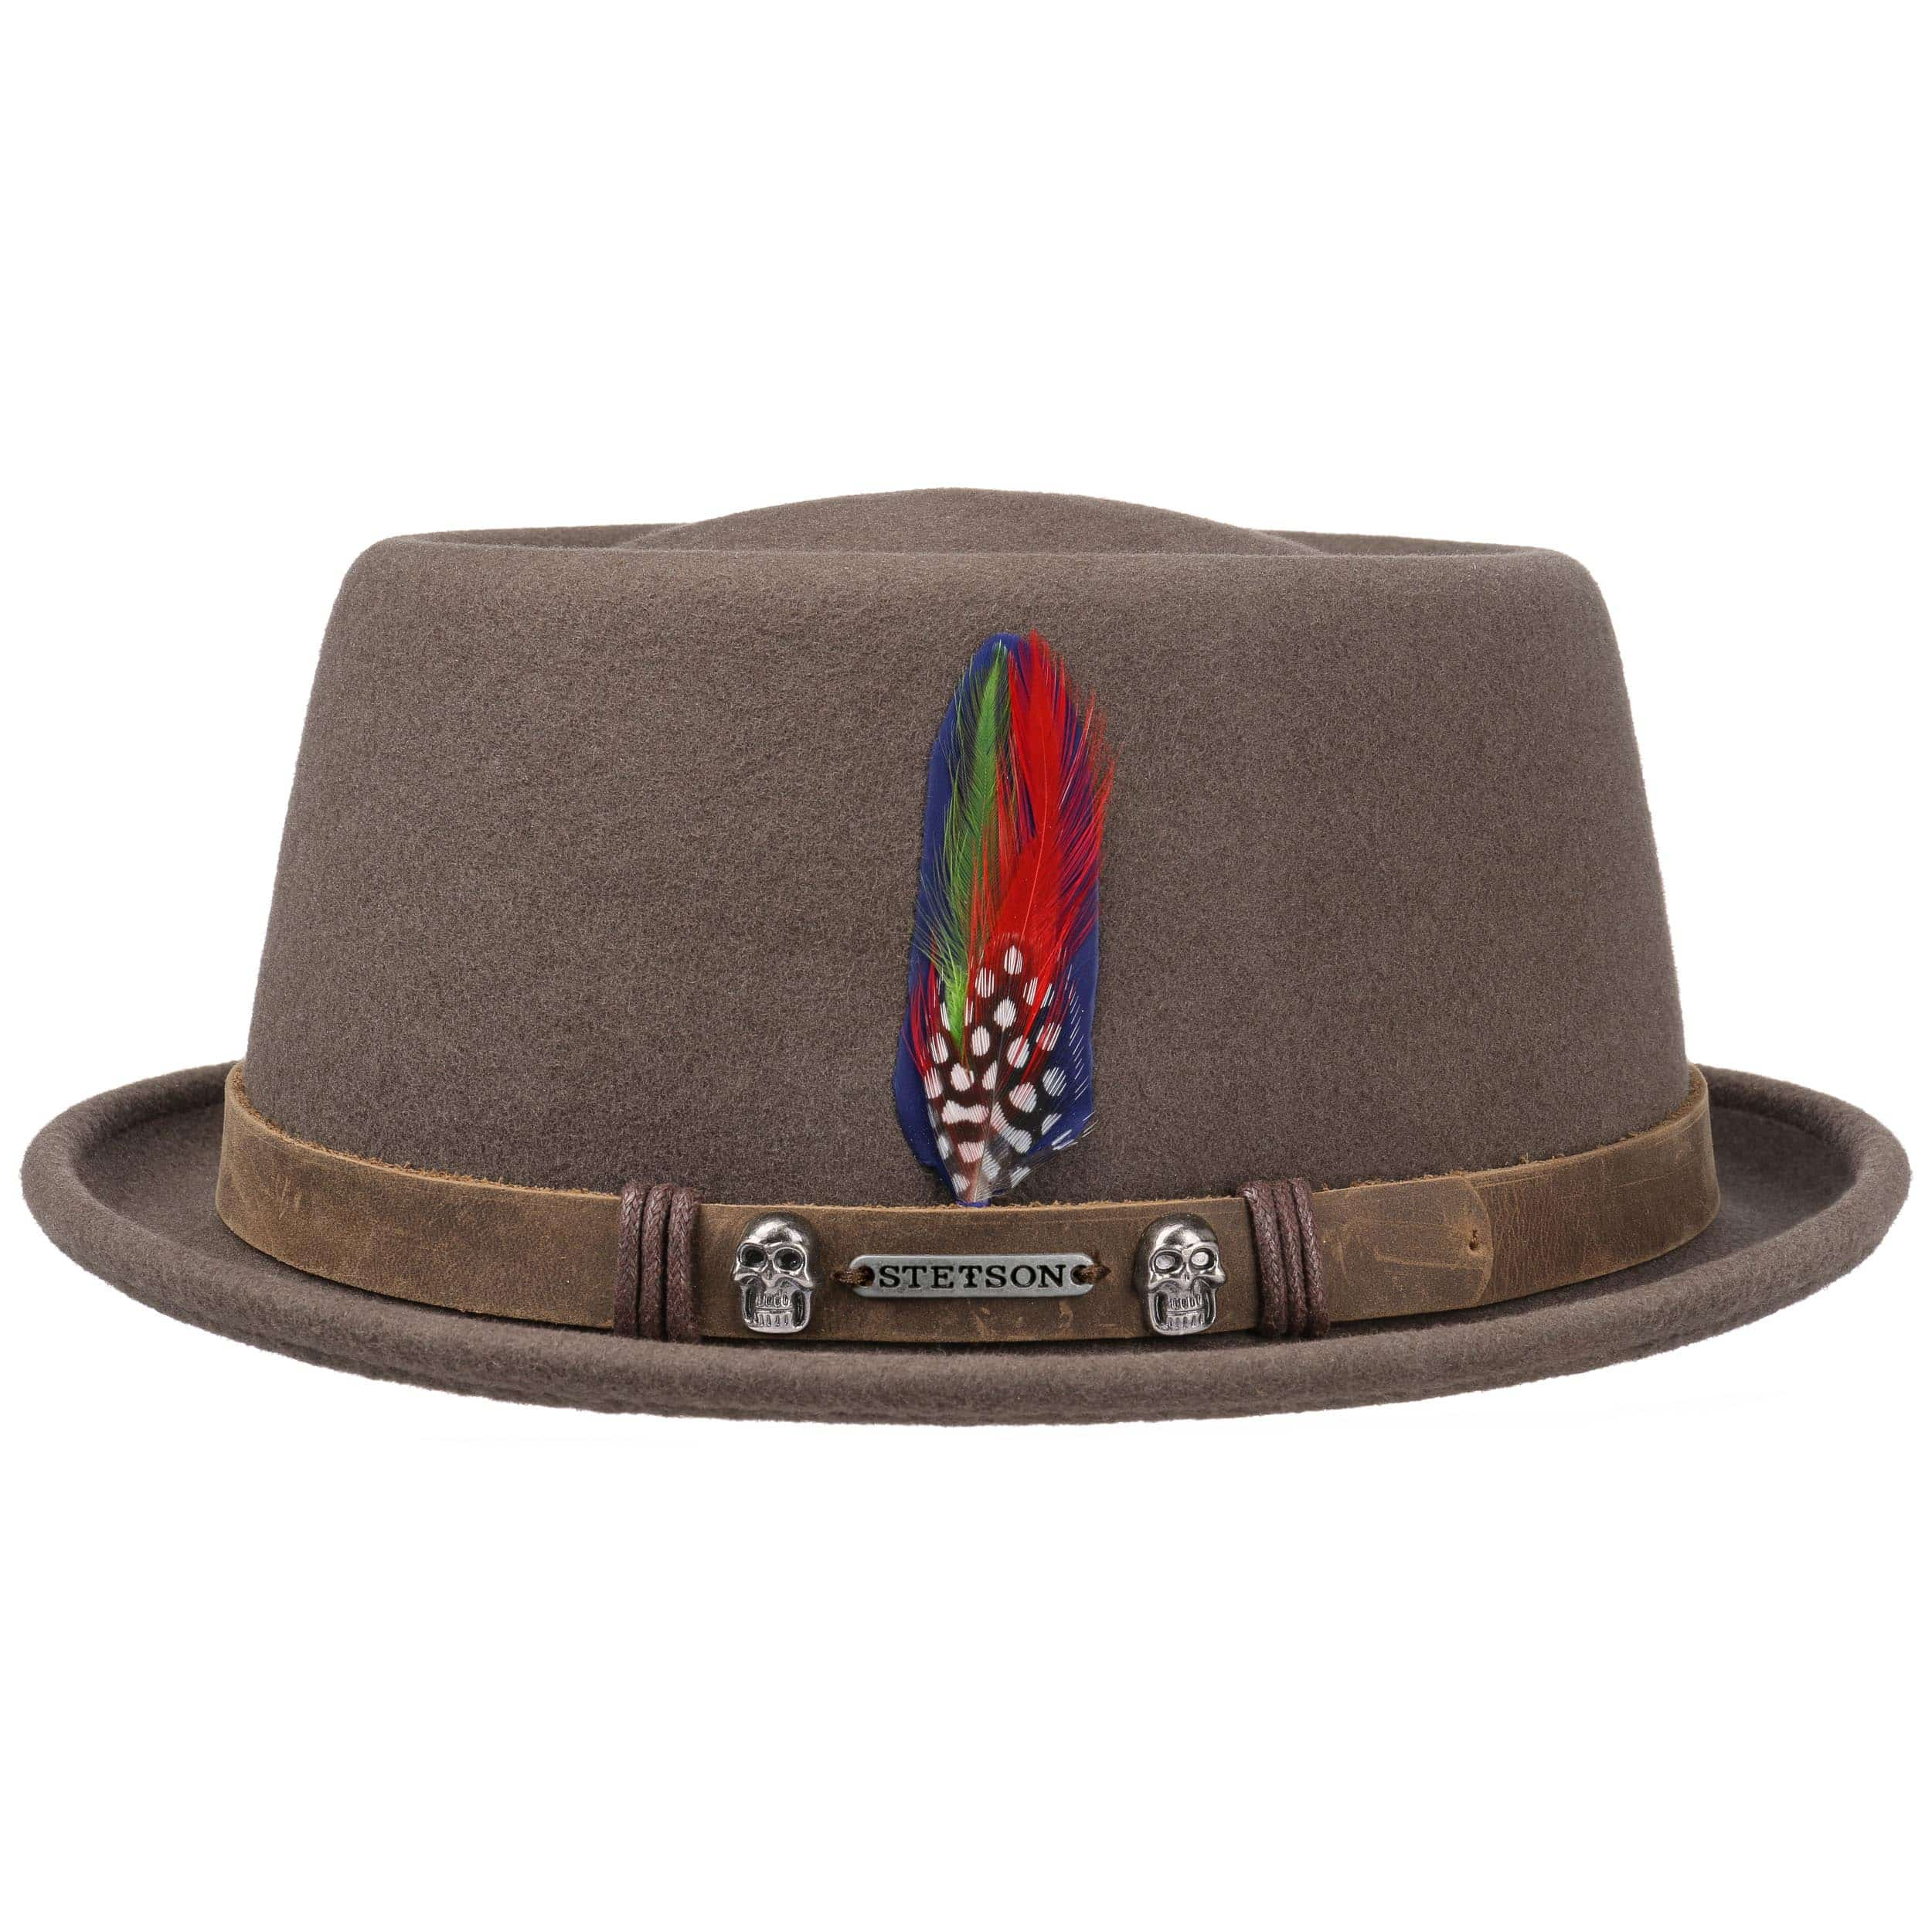 88bca9172 Pennsylvania Pork Pie Hat by Stetson